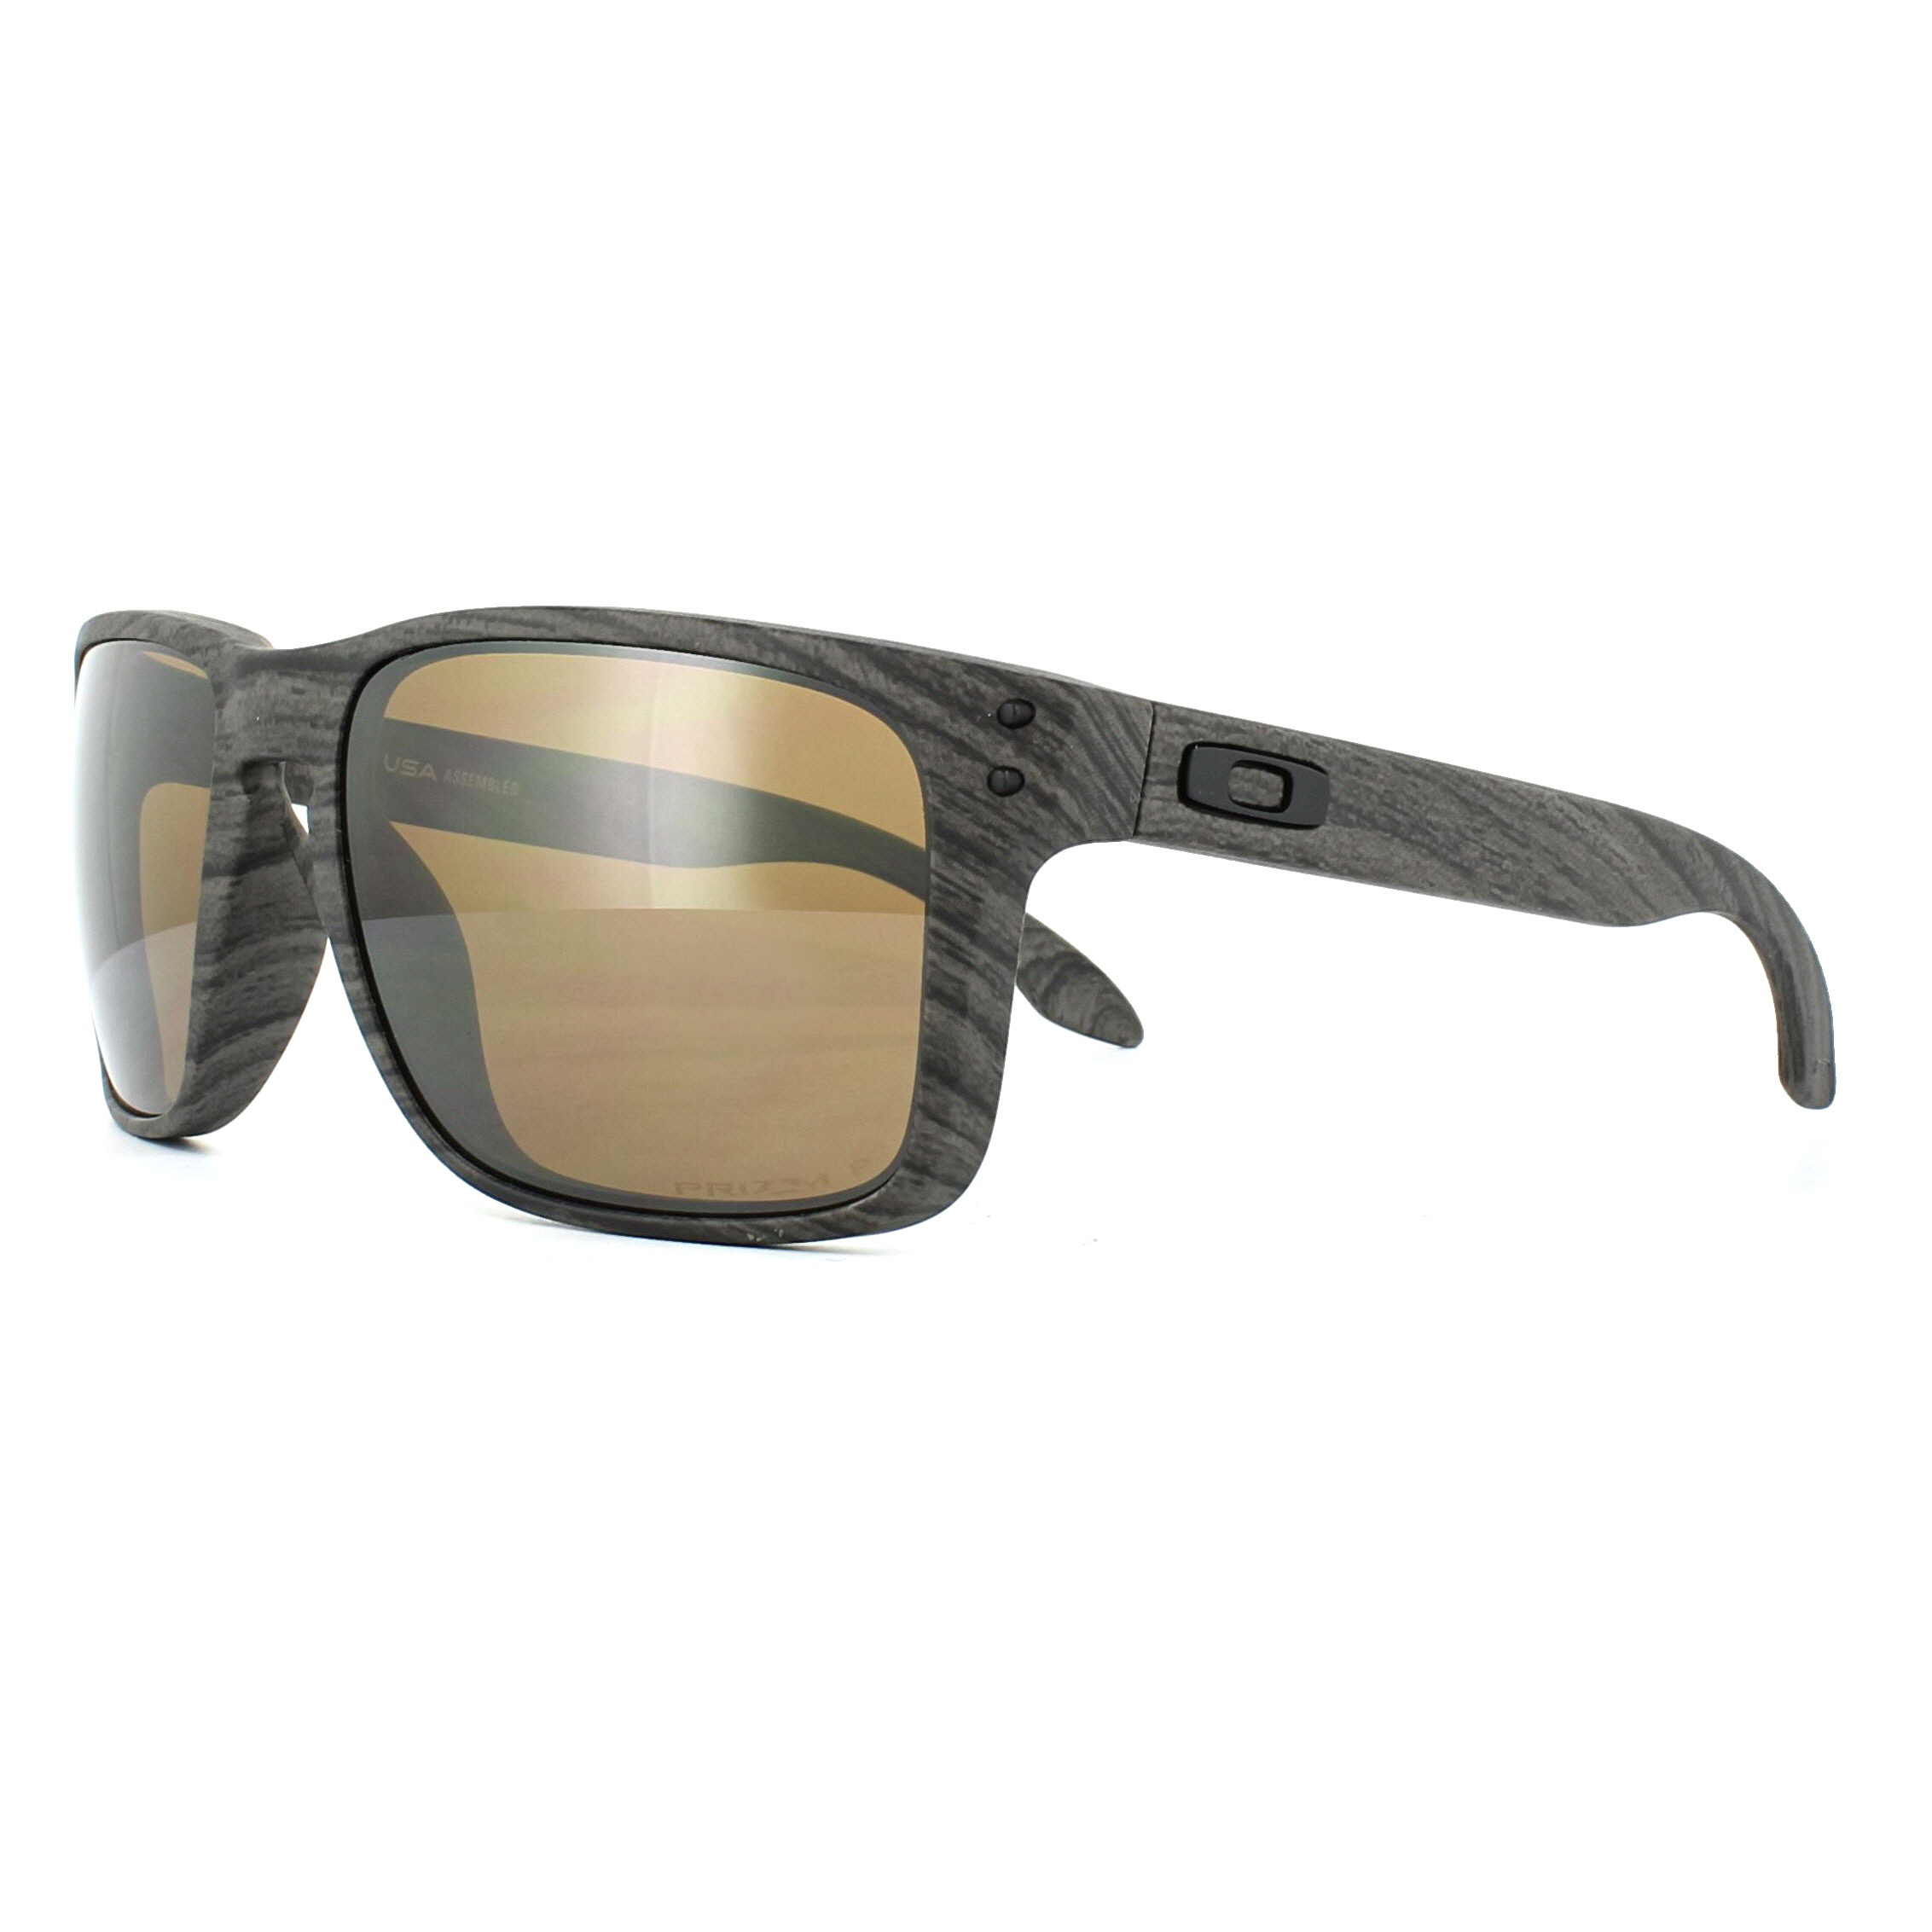 0150905681c18 Details about Oakley Sunglasses Holbrook XL OO9417-06 Woodgrain Prizm  Tungsten Polarized